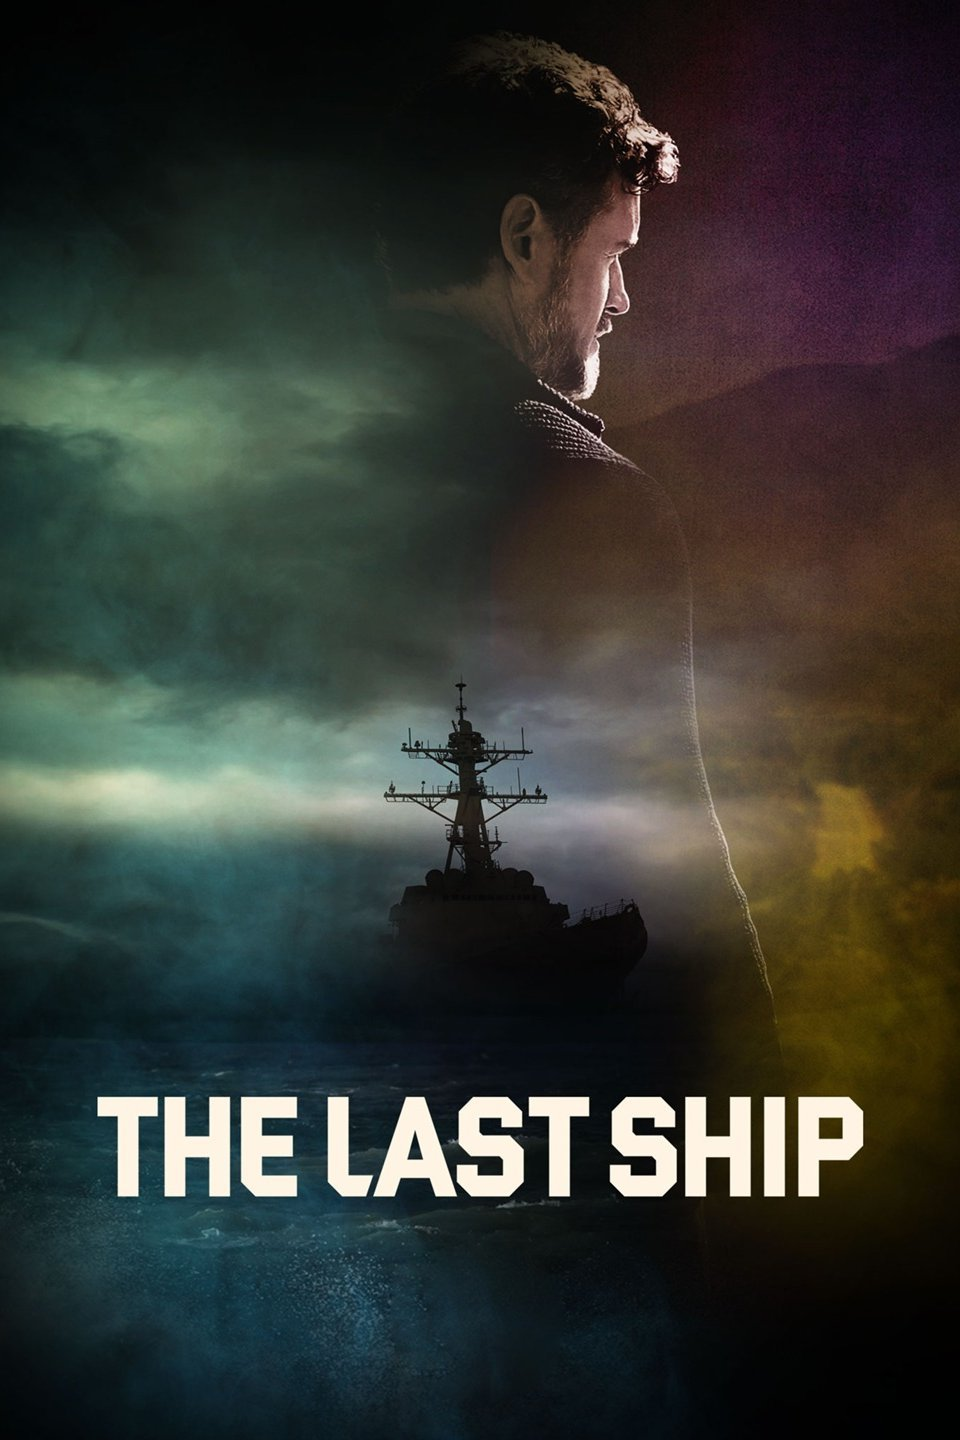 The Last Ship Season 4 Episode 2 WEBRip Micromkv